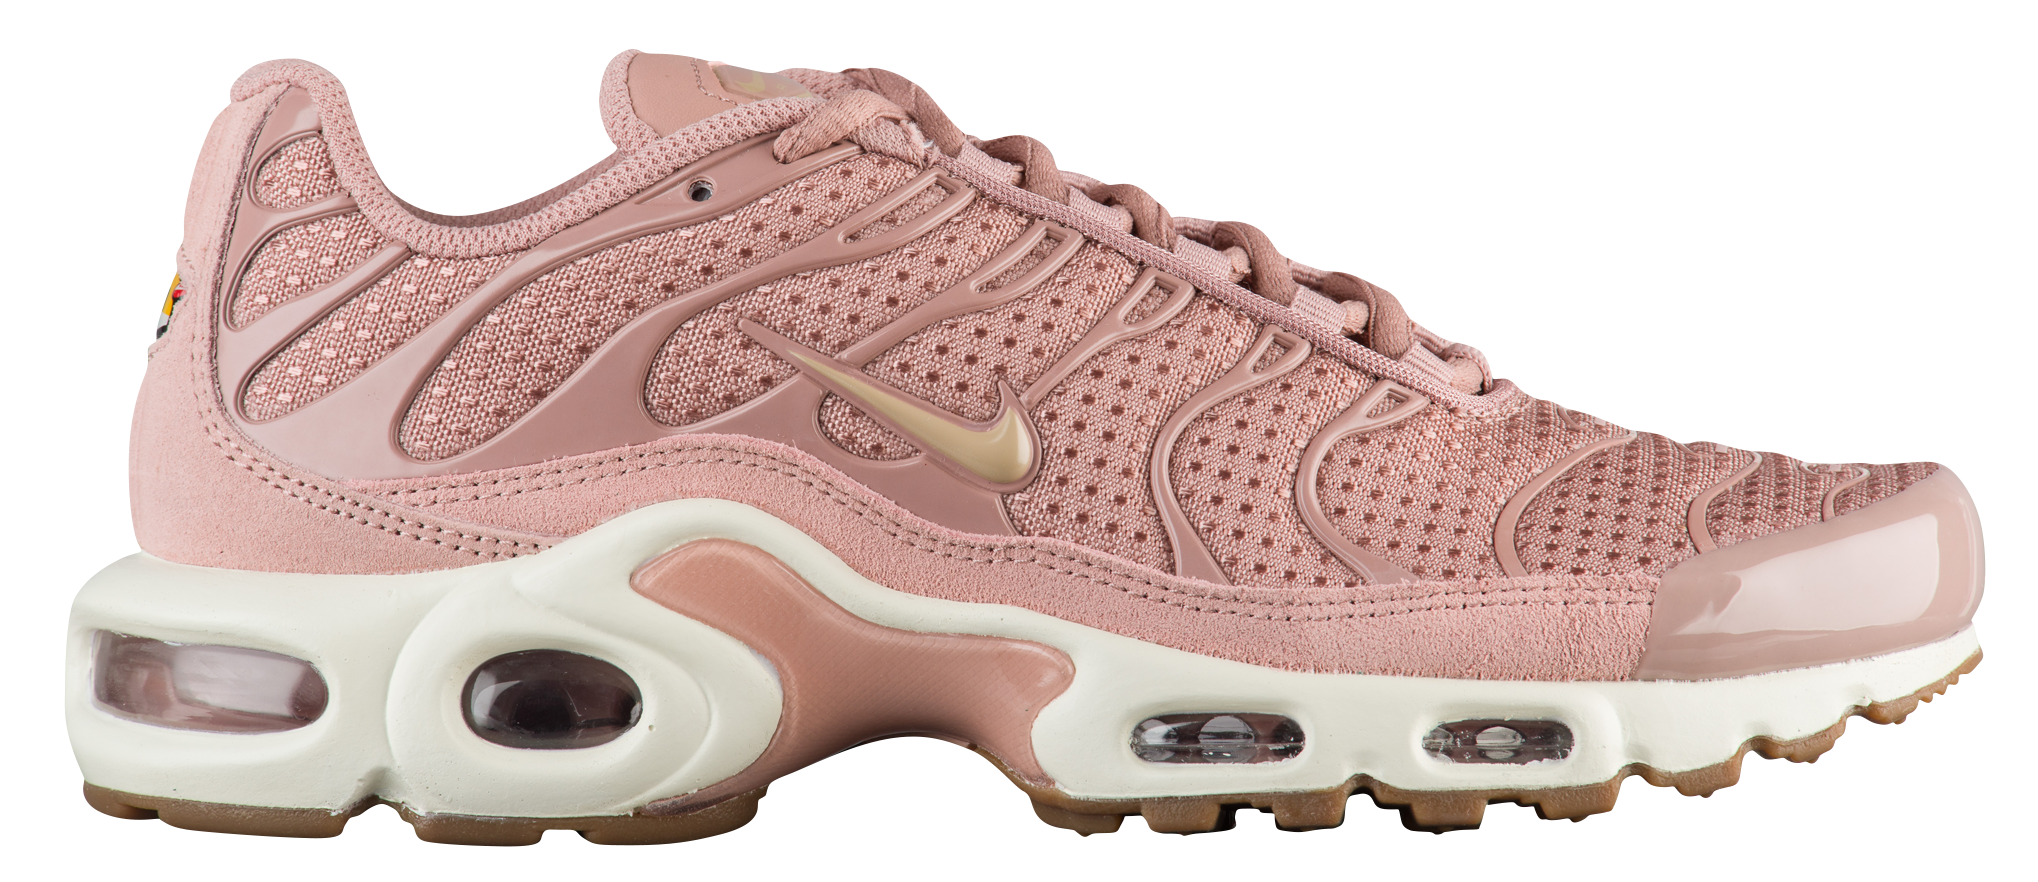 c7d06cff0f00 Product nike air max plus womens 05112603.html